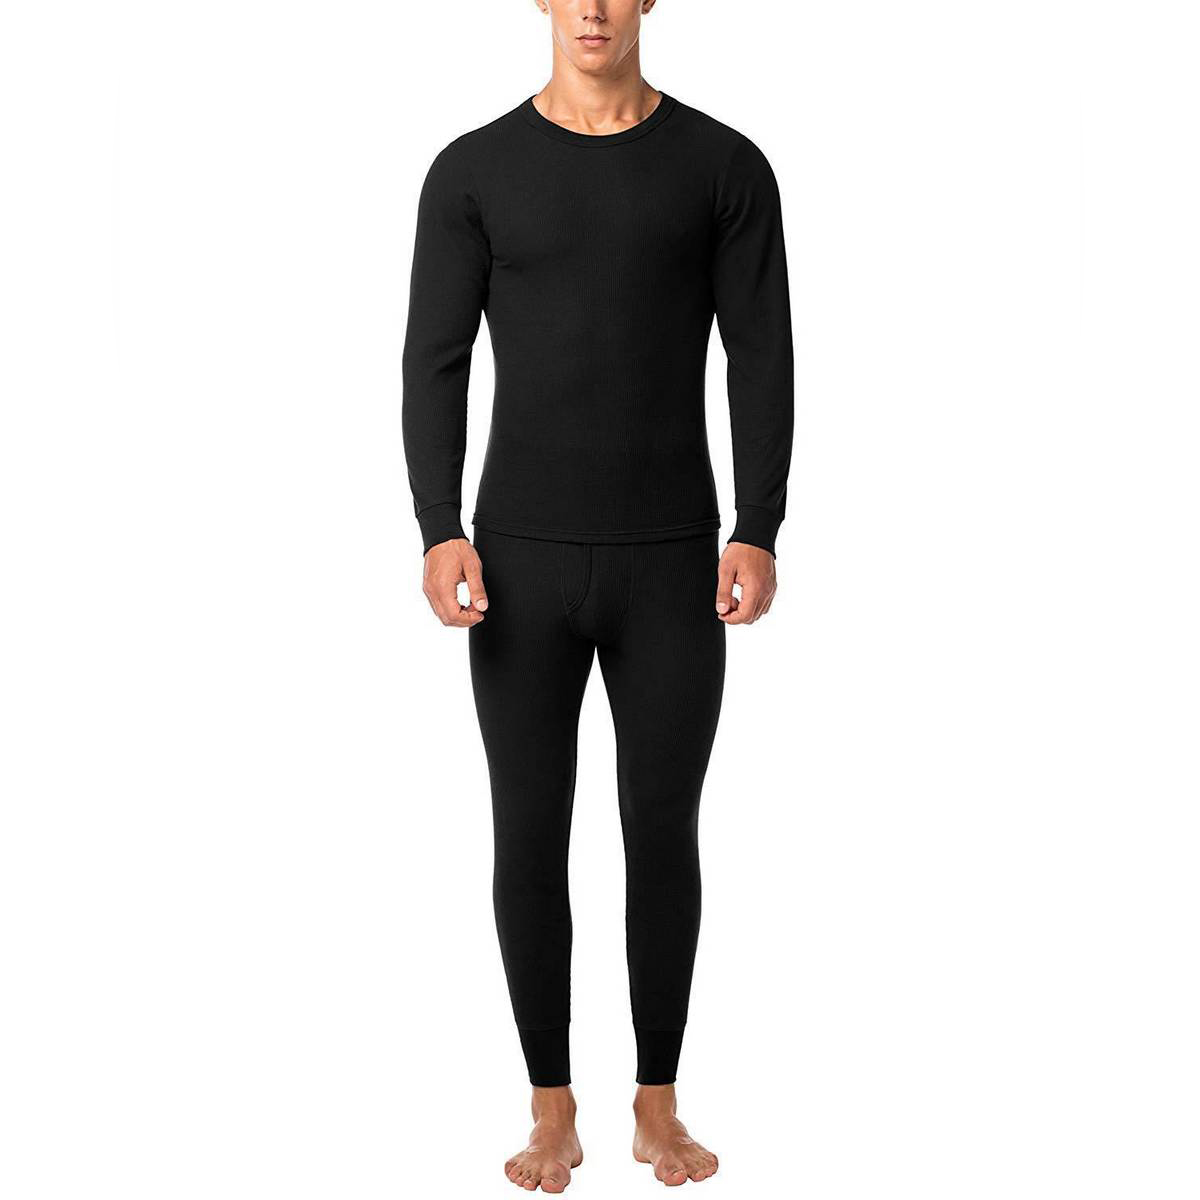 Two pieces set full body Black Thermal Suit &Winter warmer and Pajama and full bazoo for unisex